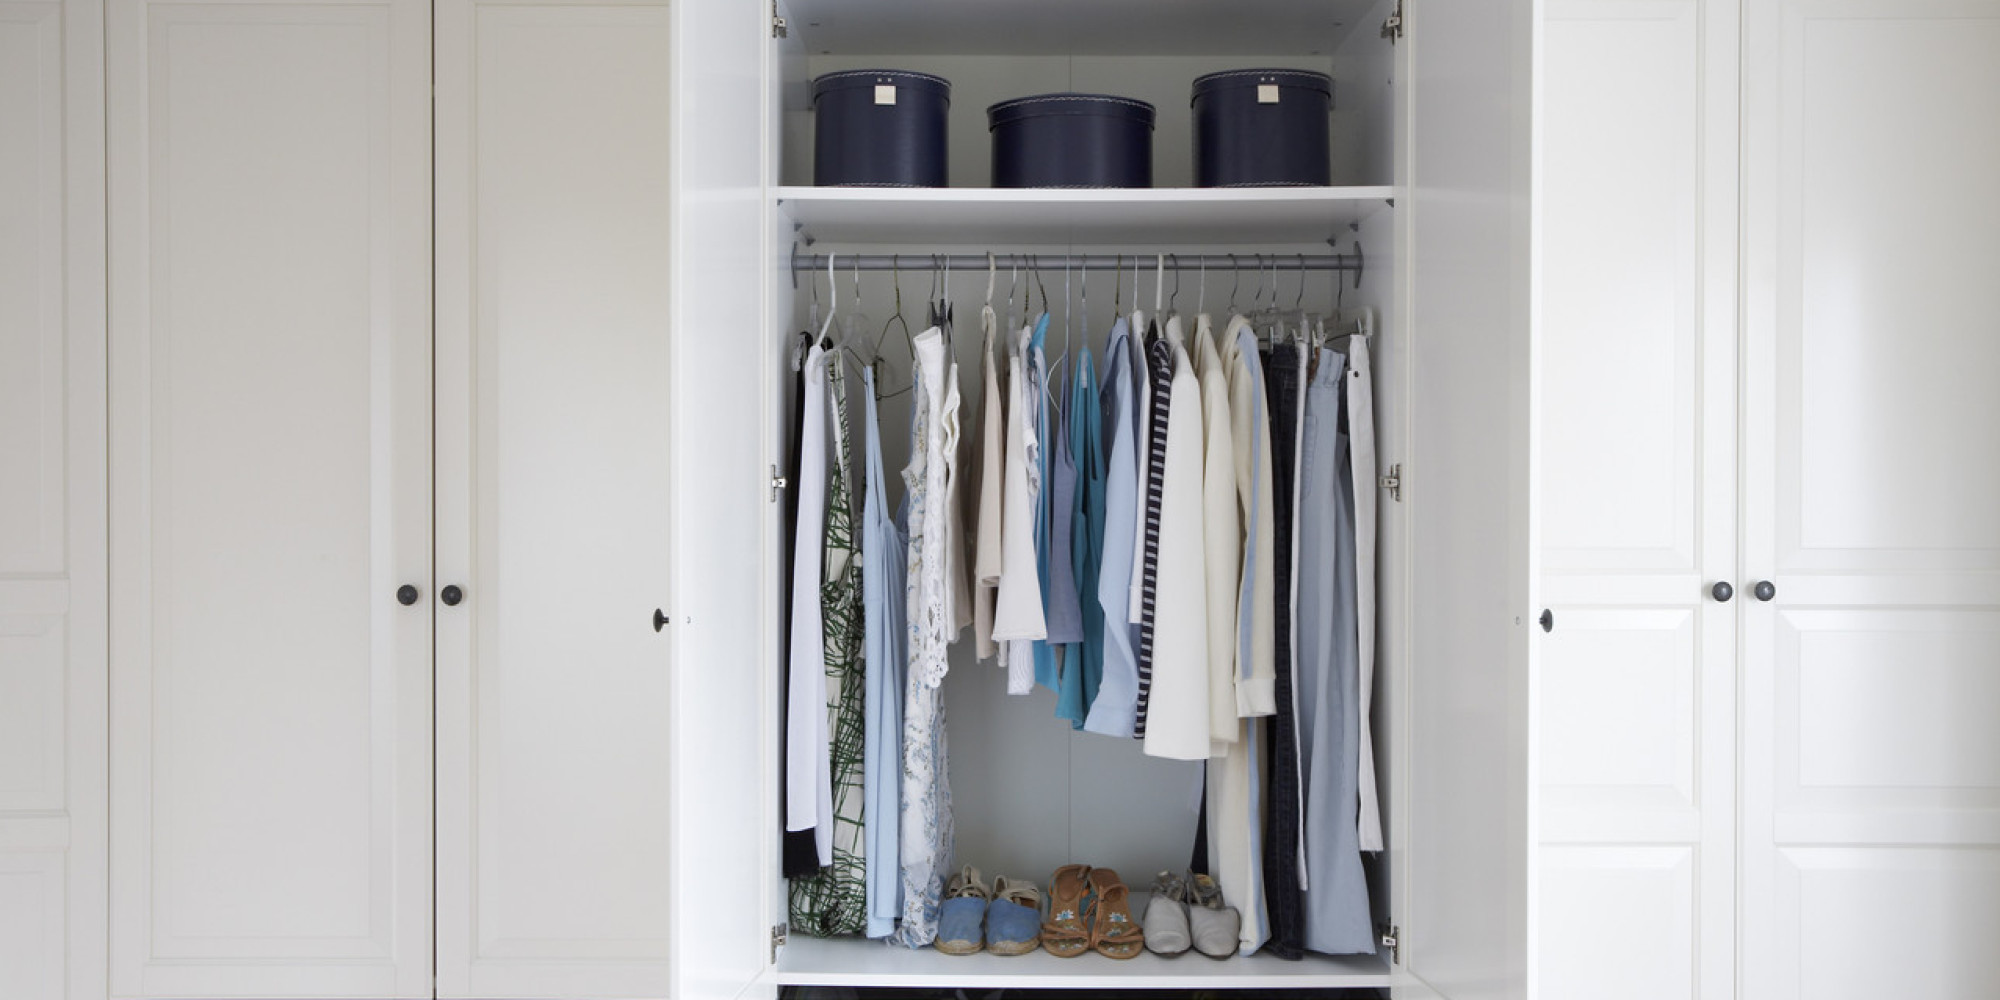 How To Store Your Winter Clothing In The Off-Season | HuffPost